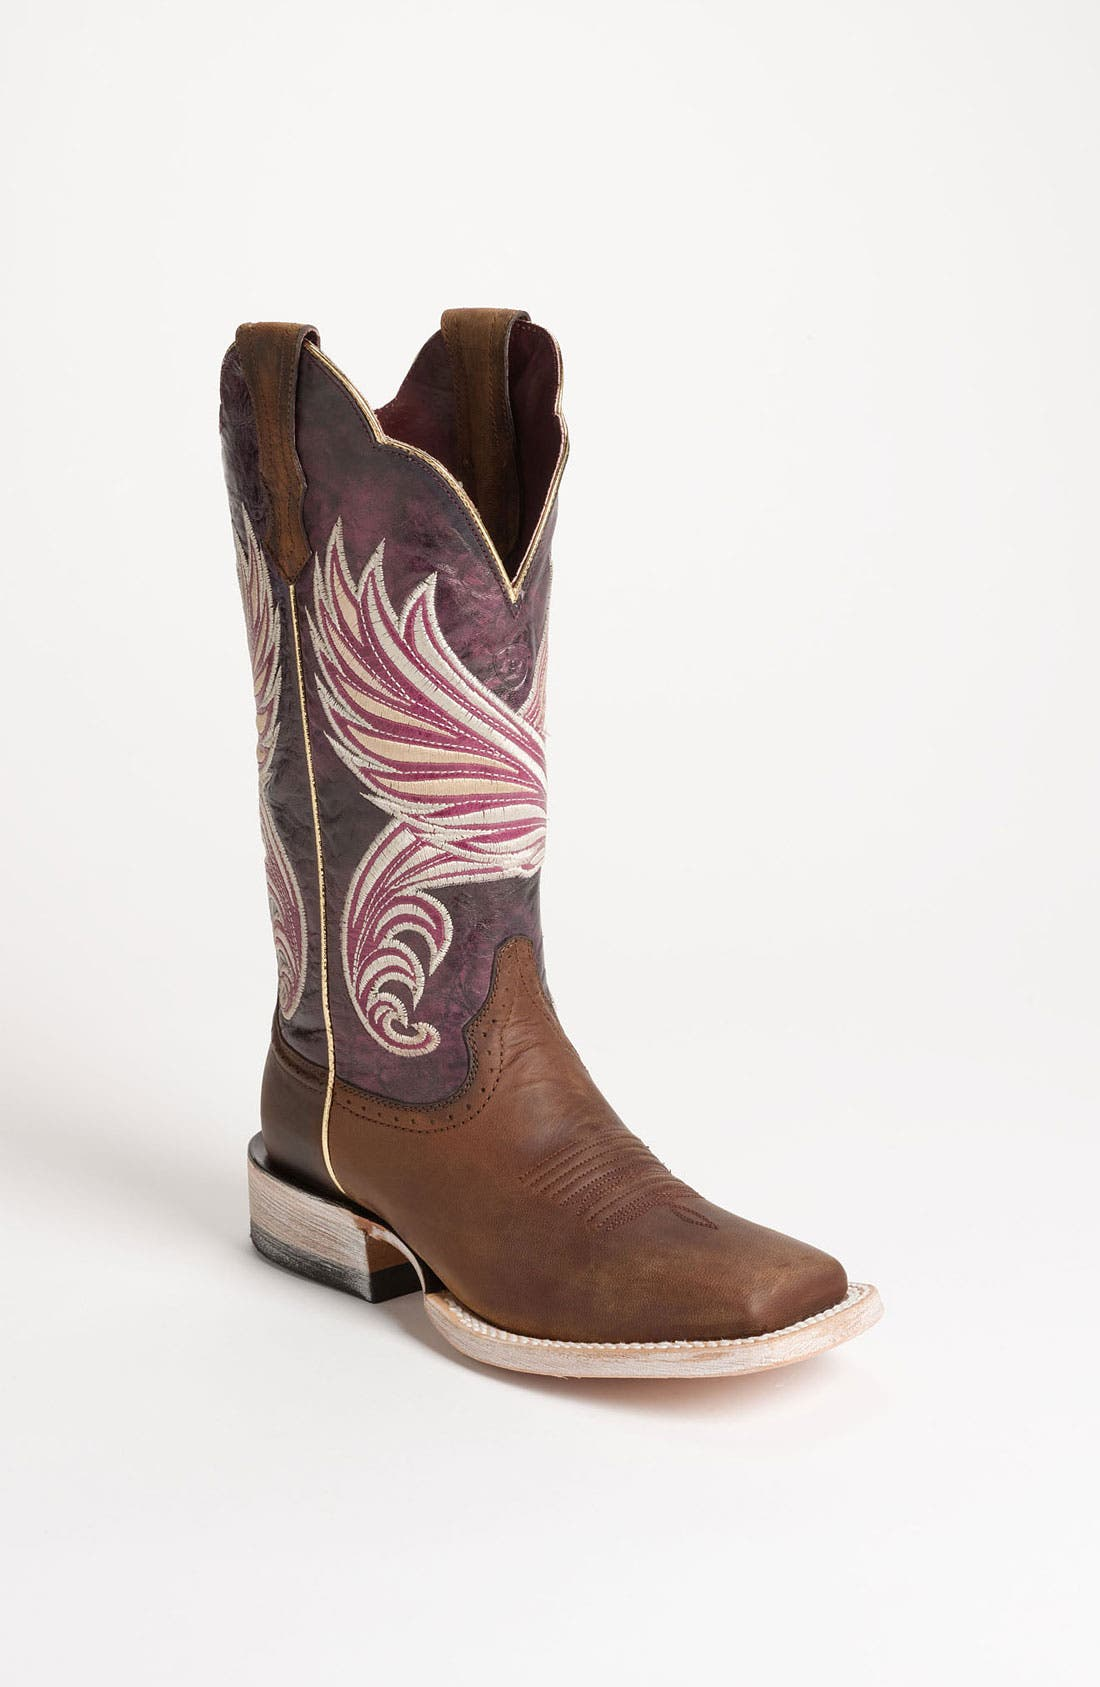 Alternate Image 1 Selected - Ariat 'Fortress' Boot